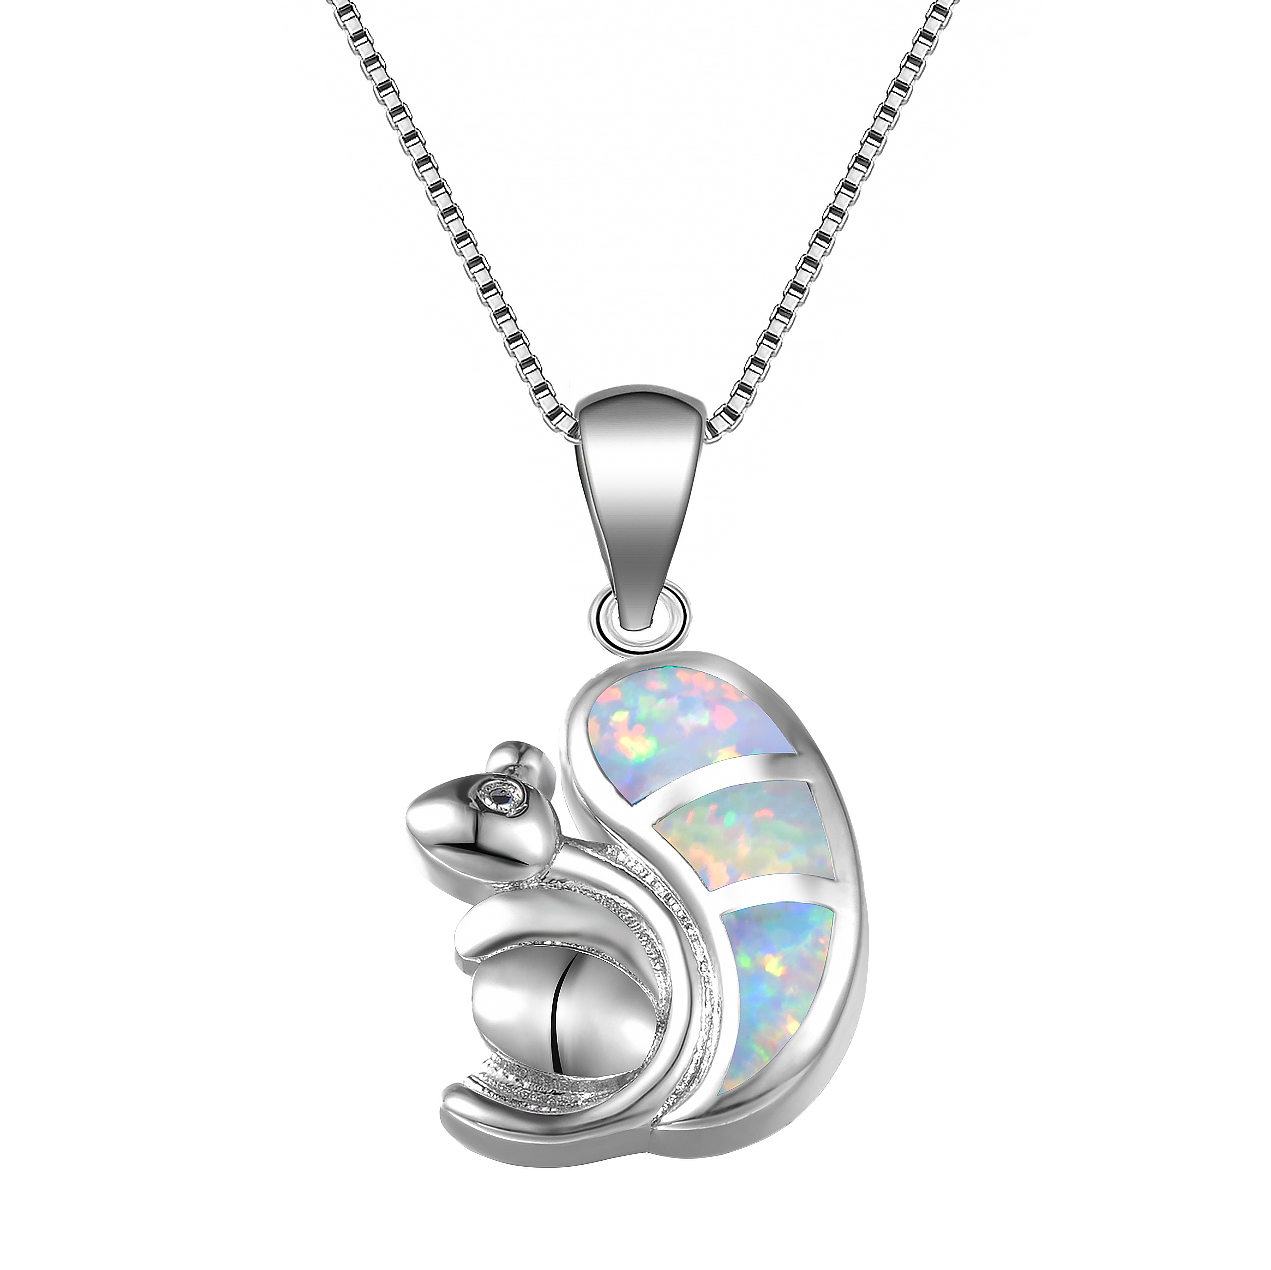 silver jewelry bccb products necklace pendant fire sterling handcrafted artistic designer john artisan opal tzelepis